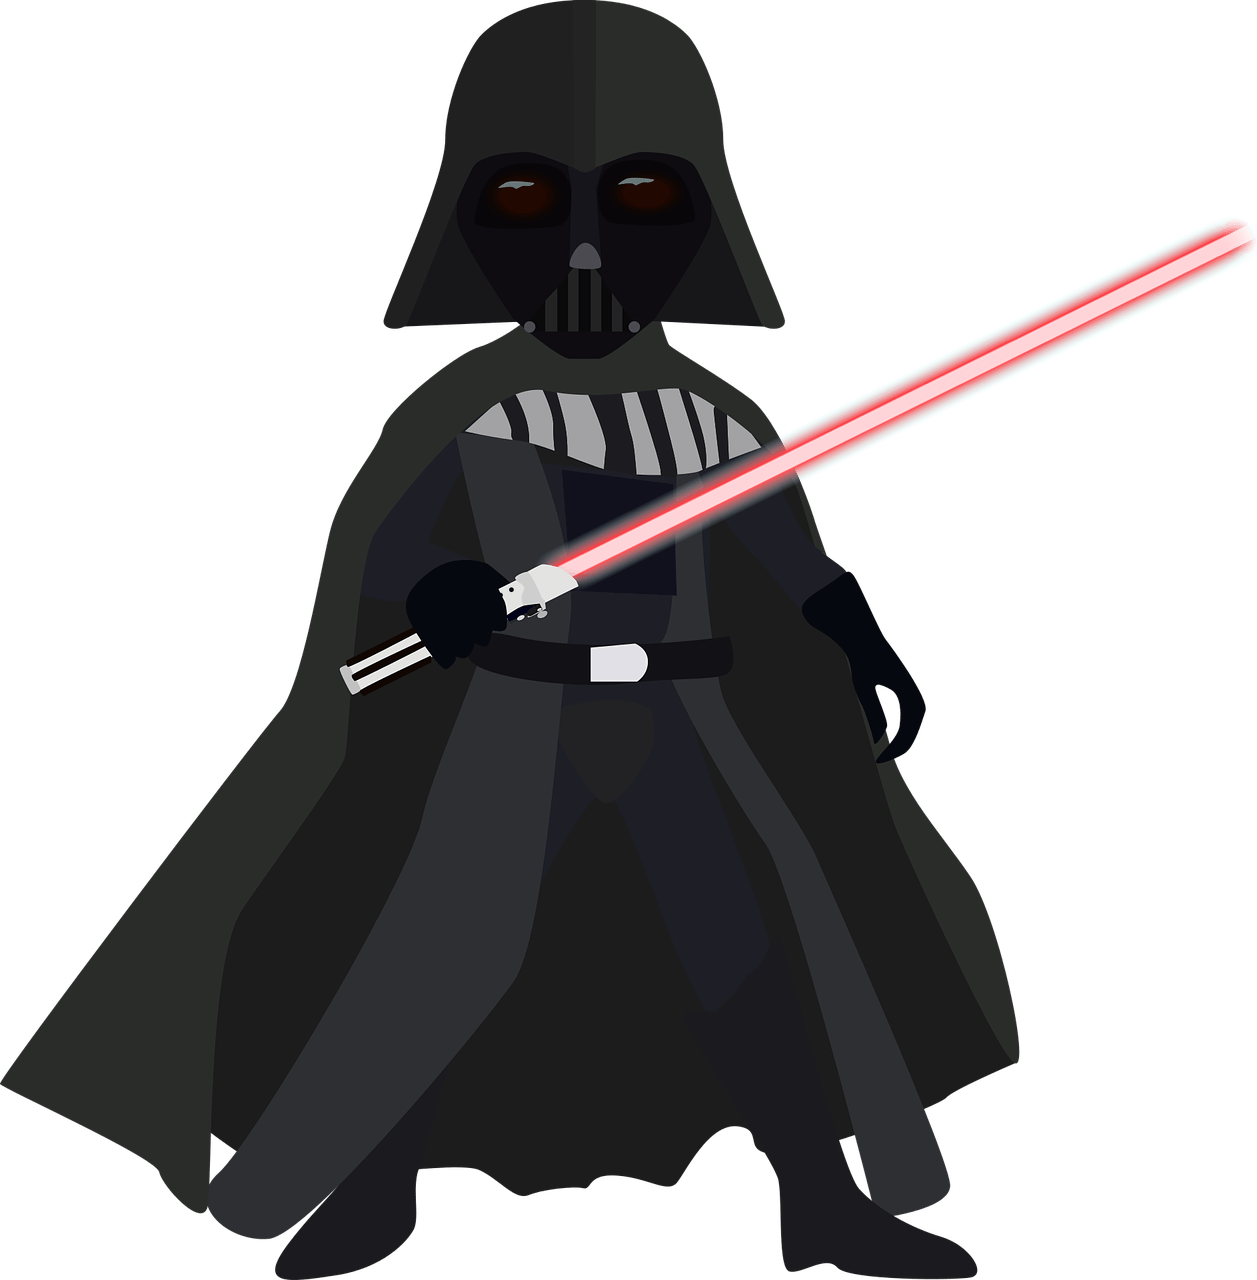 Star wars clipart luke skywalker svg royalty free Star Wars transparent PNG images - StickPNG svg royalty free